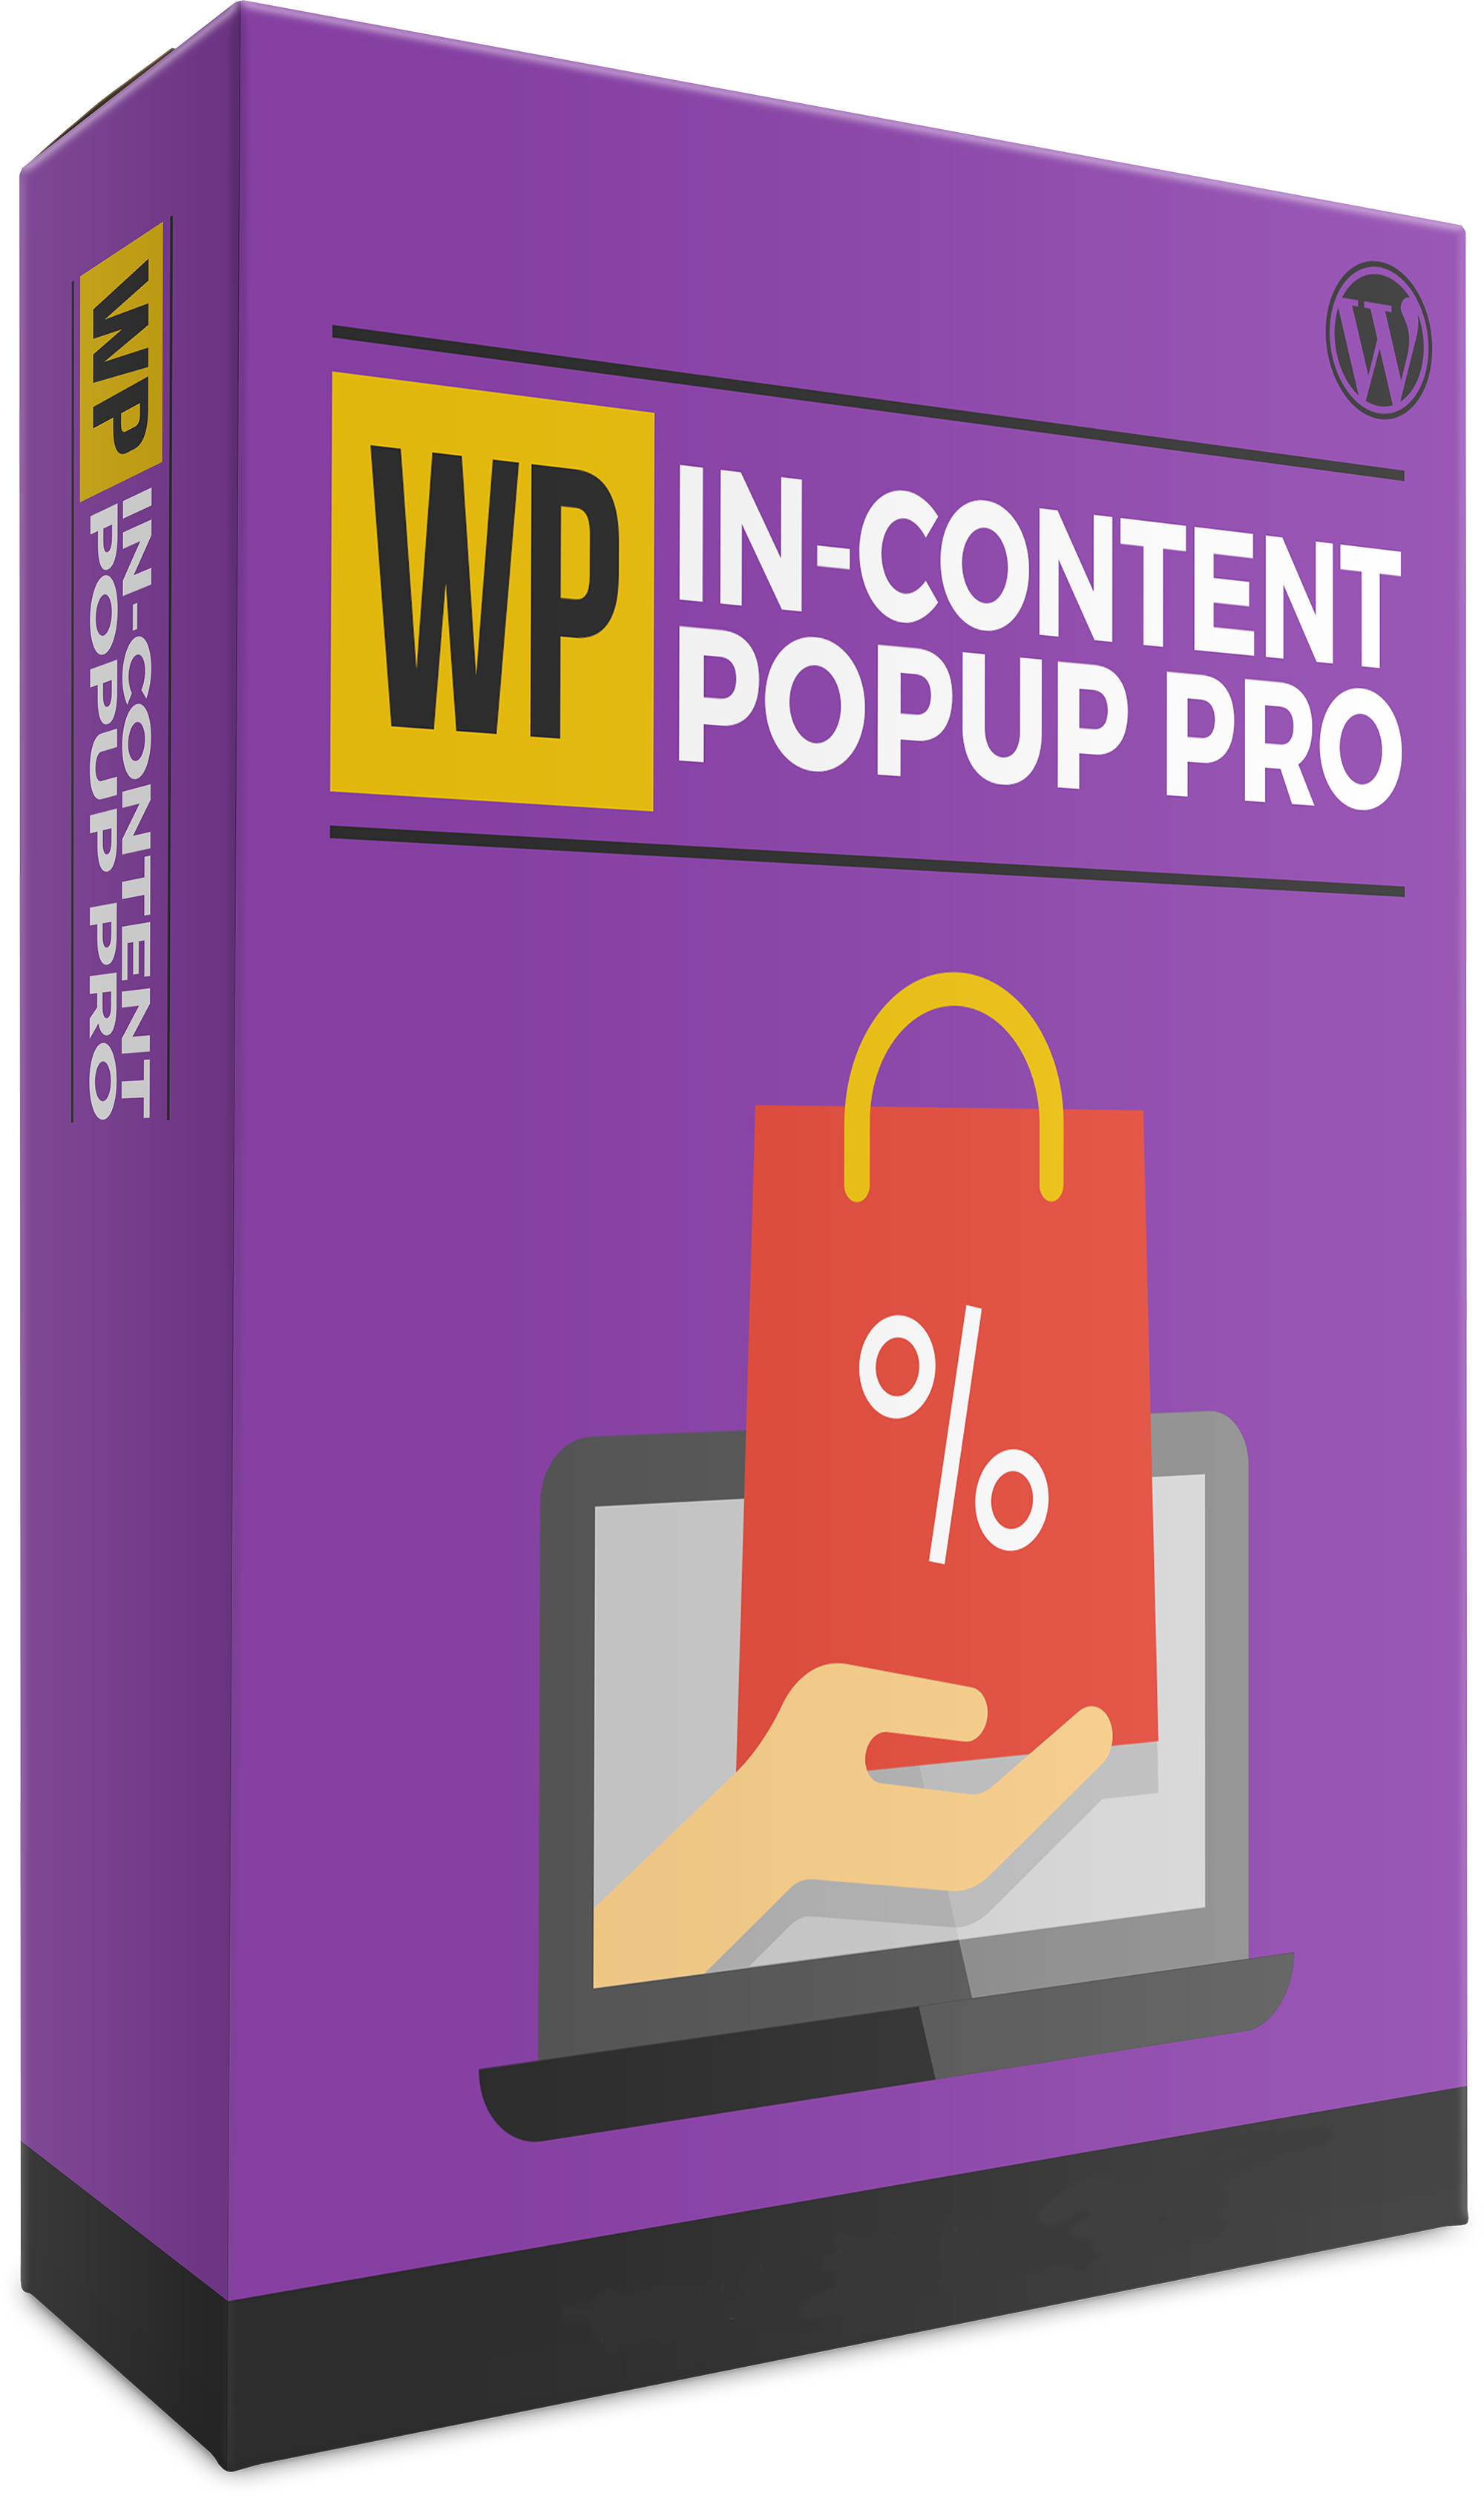 WP In-Content Popup Pro is a new plugin that lets you create attention grabbing popups